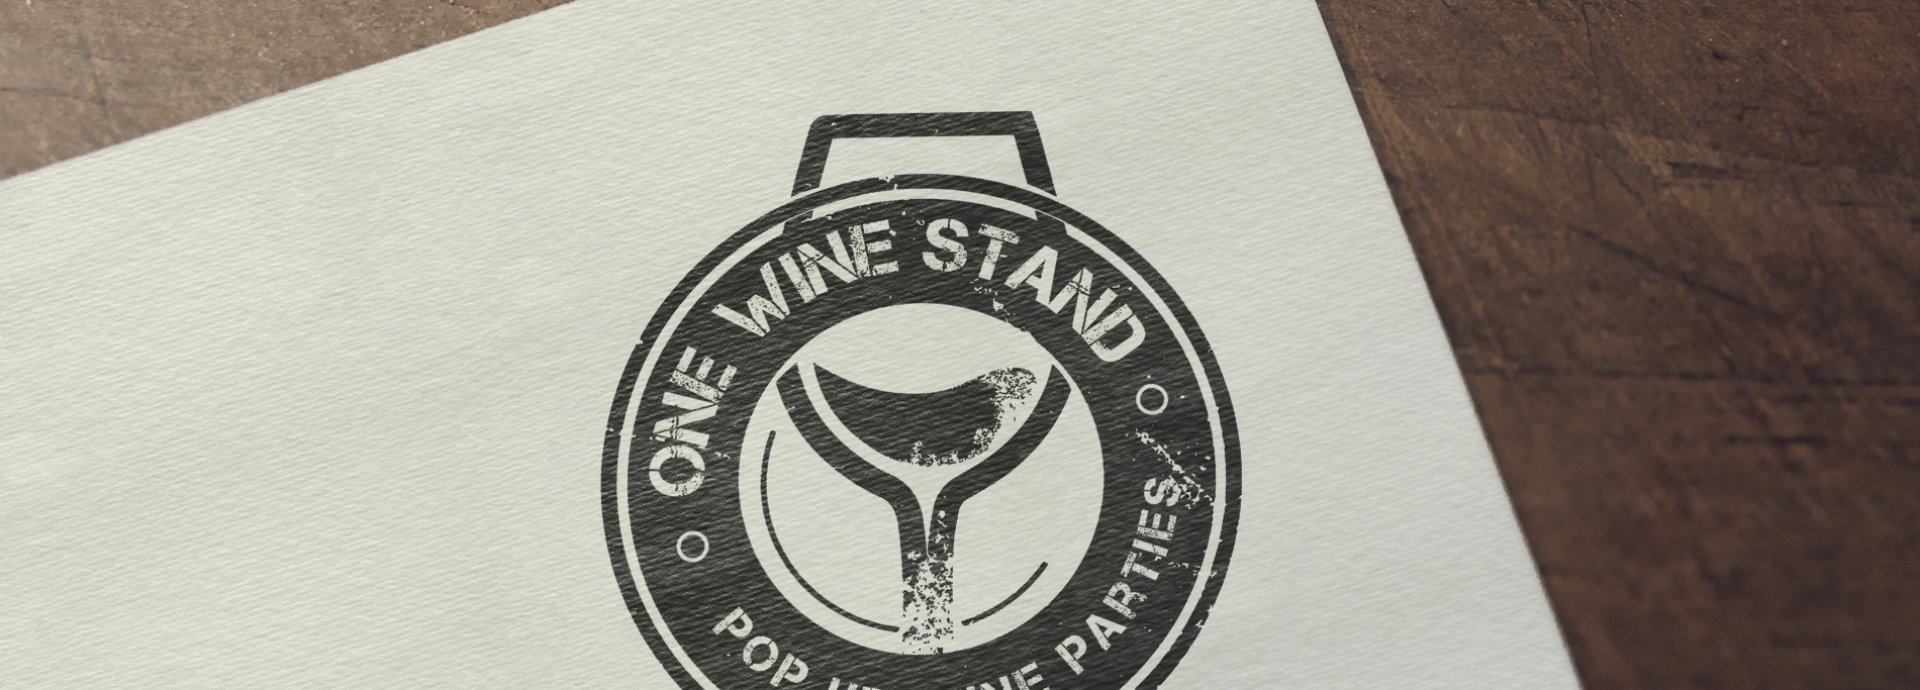 One Wine Stand